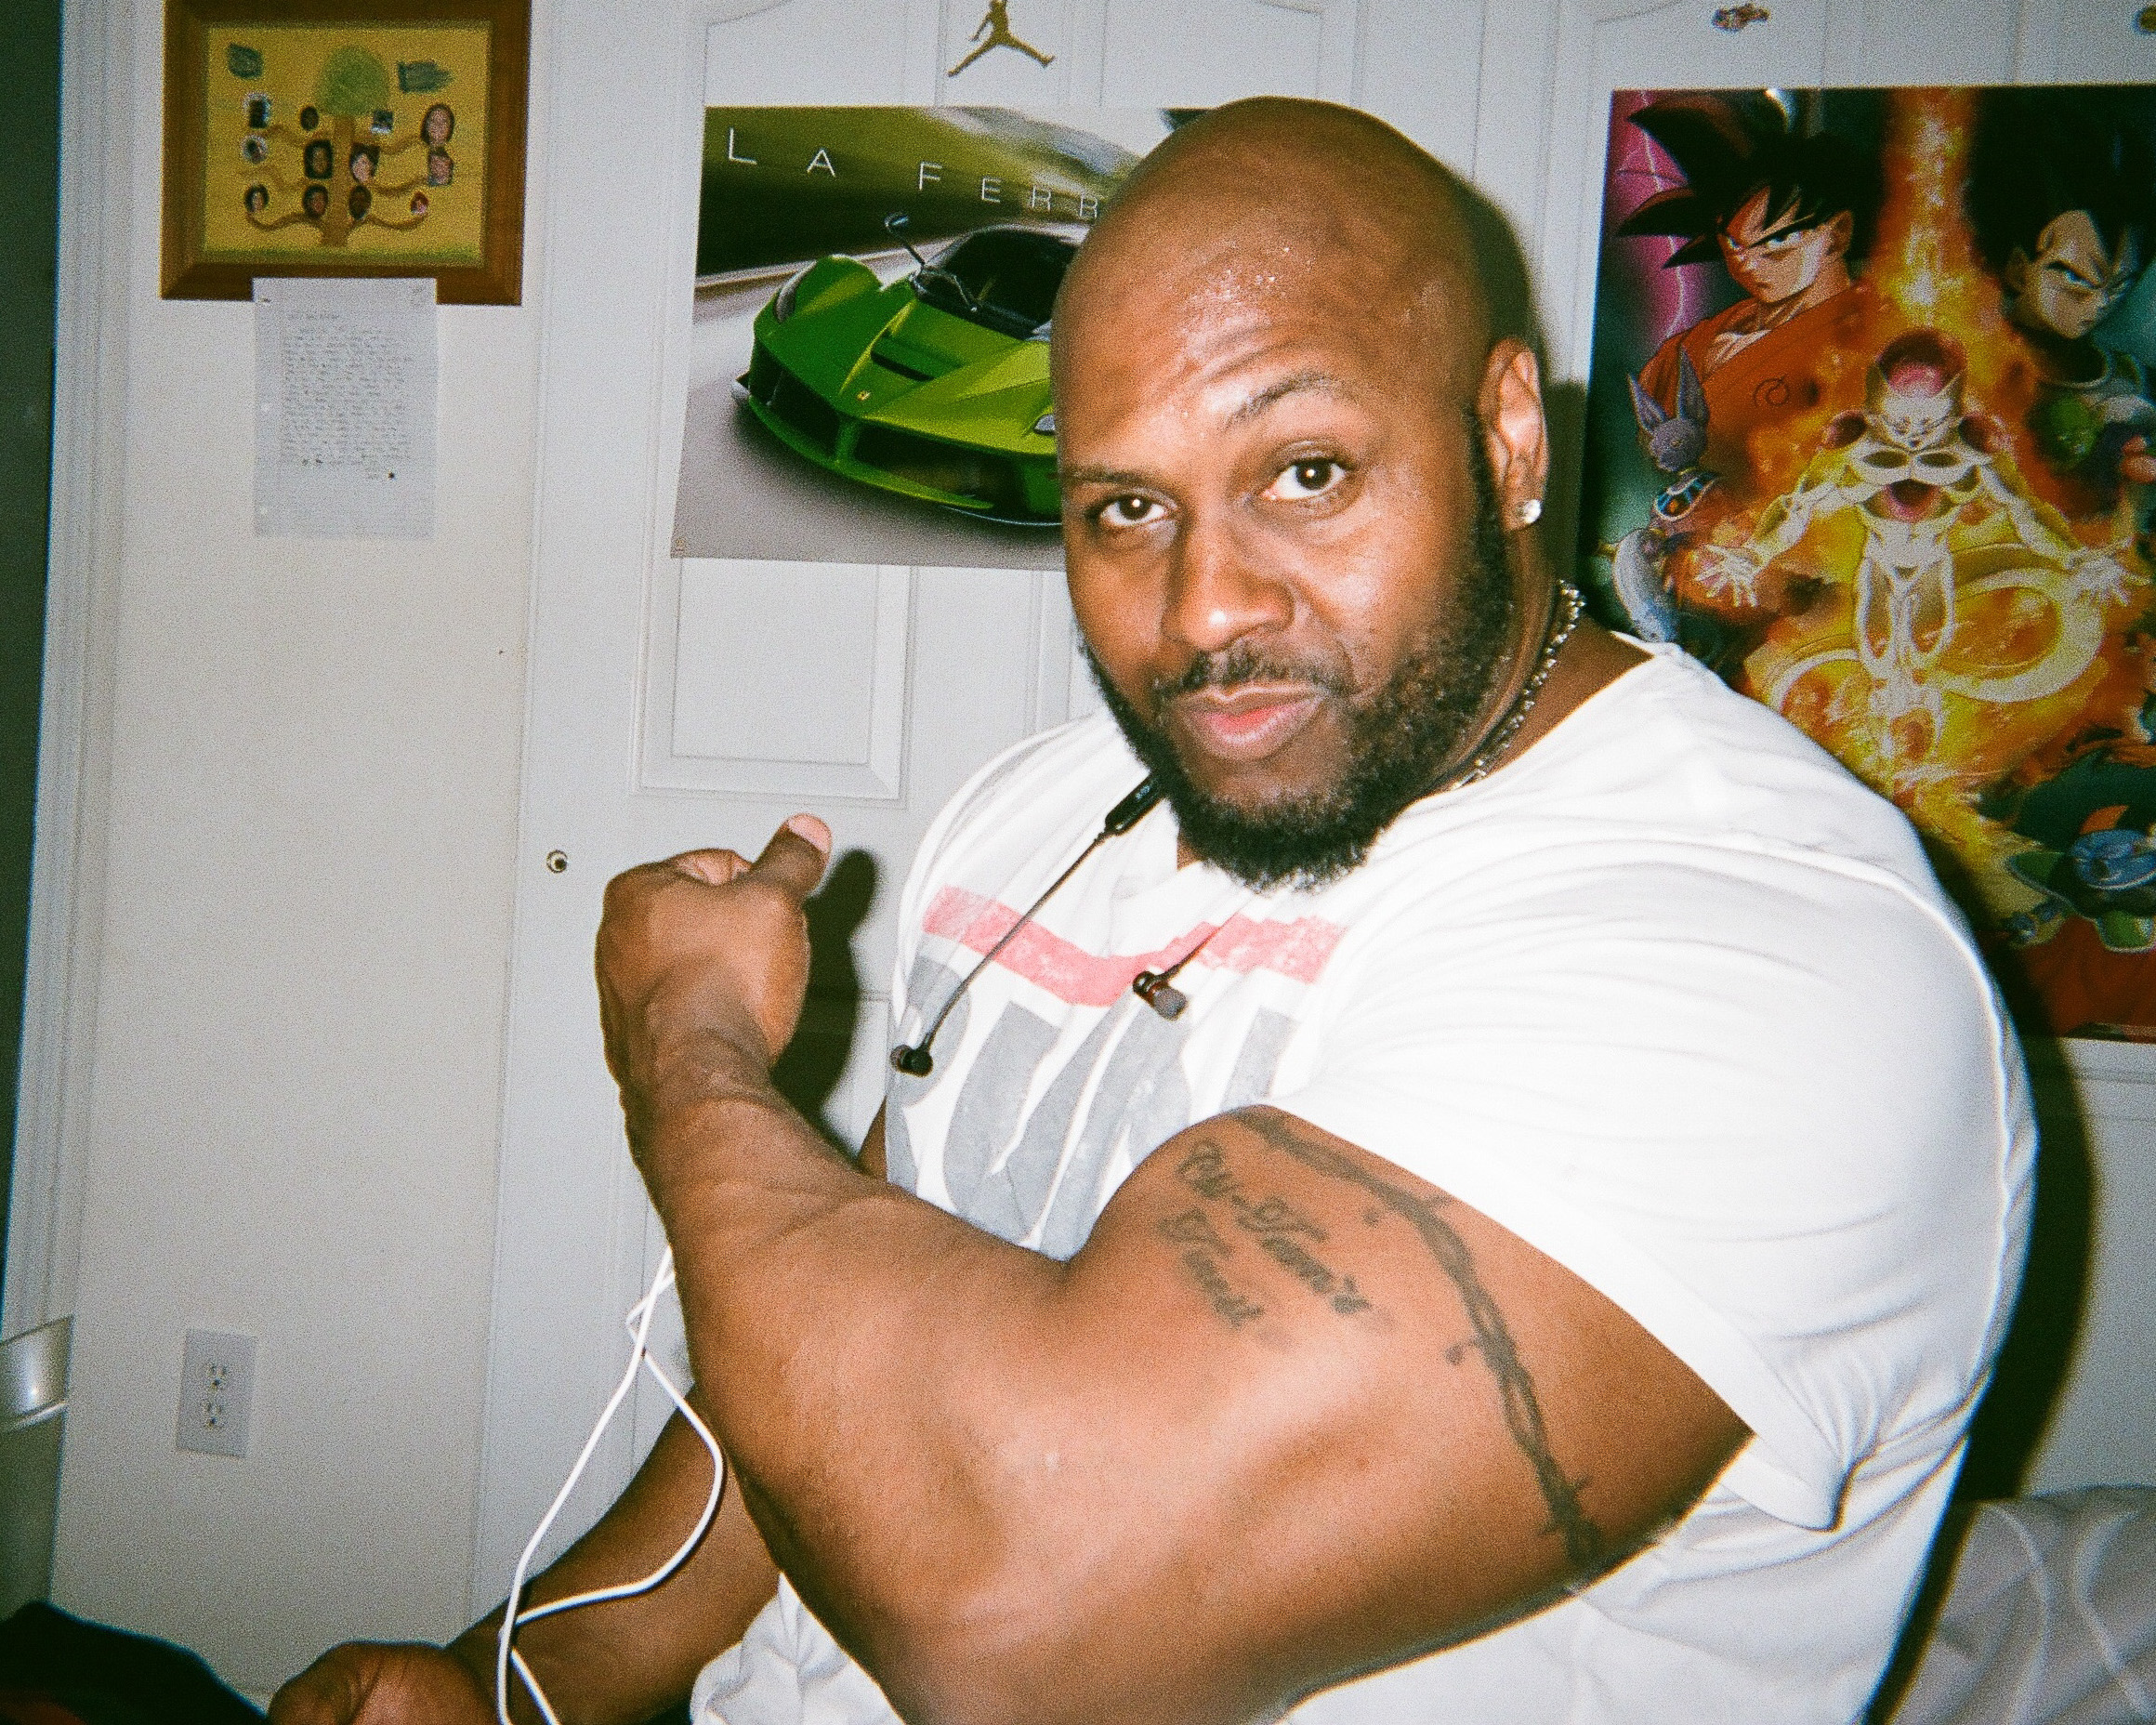 """My Big, Buff Dad  by John Michael Simmons   """"My Dad works out even through I don't get to see him all day everyday. He's buff and I love him and I love everything he does for me."""""""